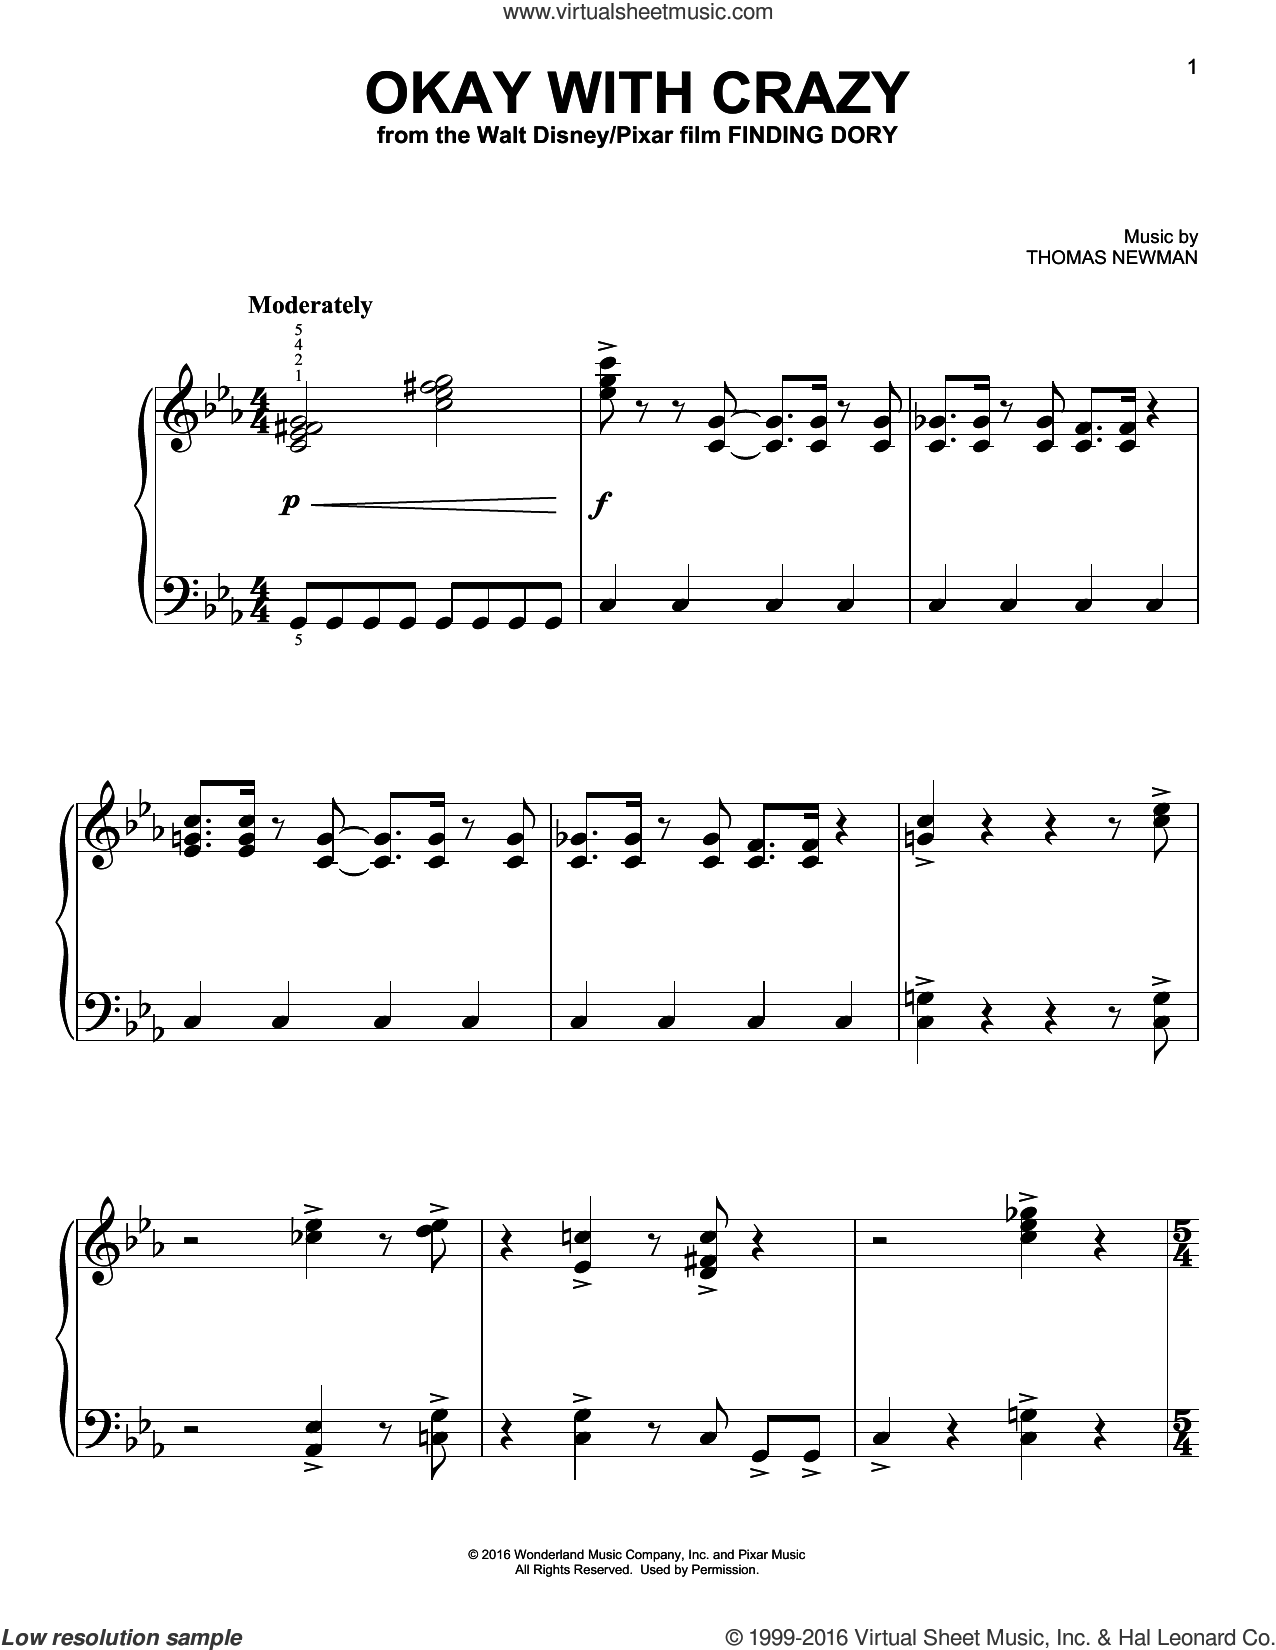 Okay With Crazy sheet music for piano solo by Thomas Newman. Score Image Preview.